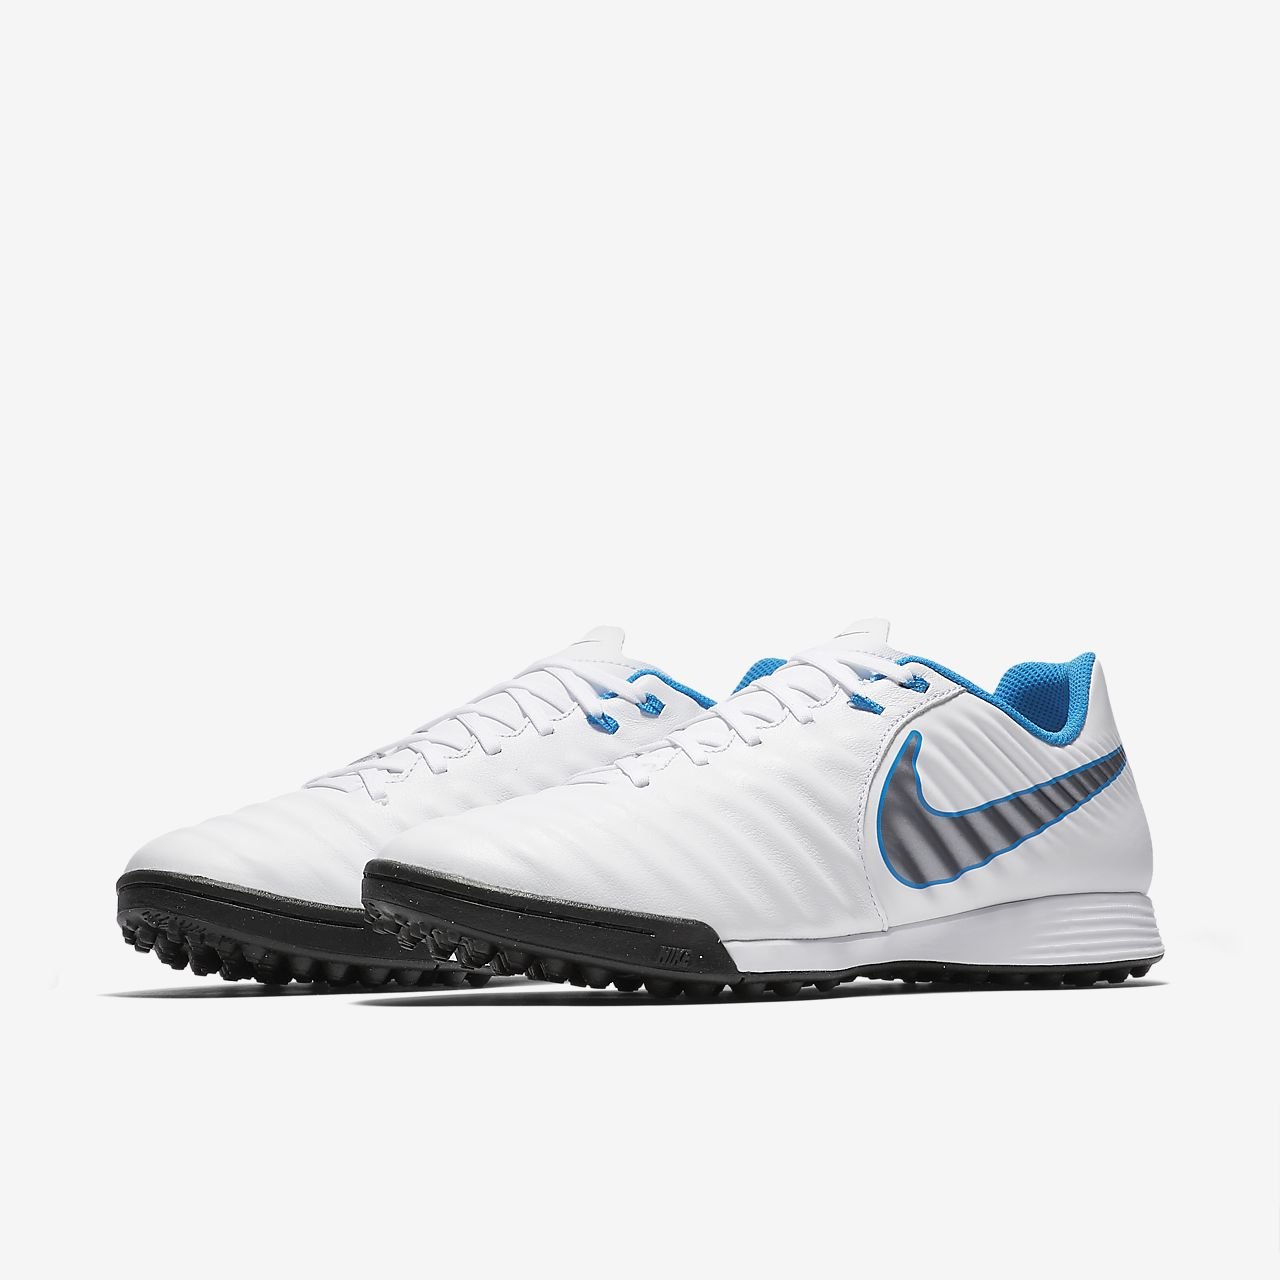 Nike Football Legendx 7 Astro Turf Trainers In White AH7243-107 for sale 2014 by5clxNR5r